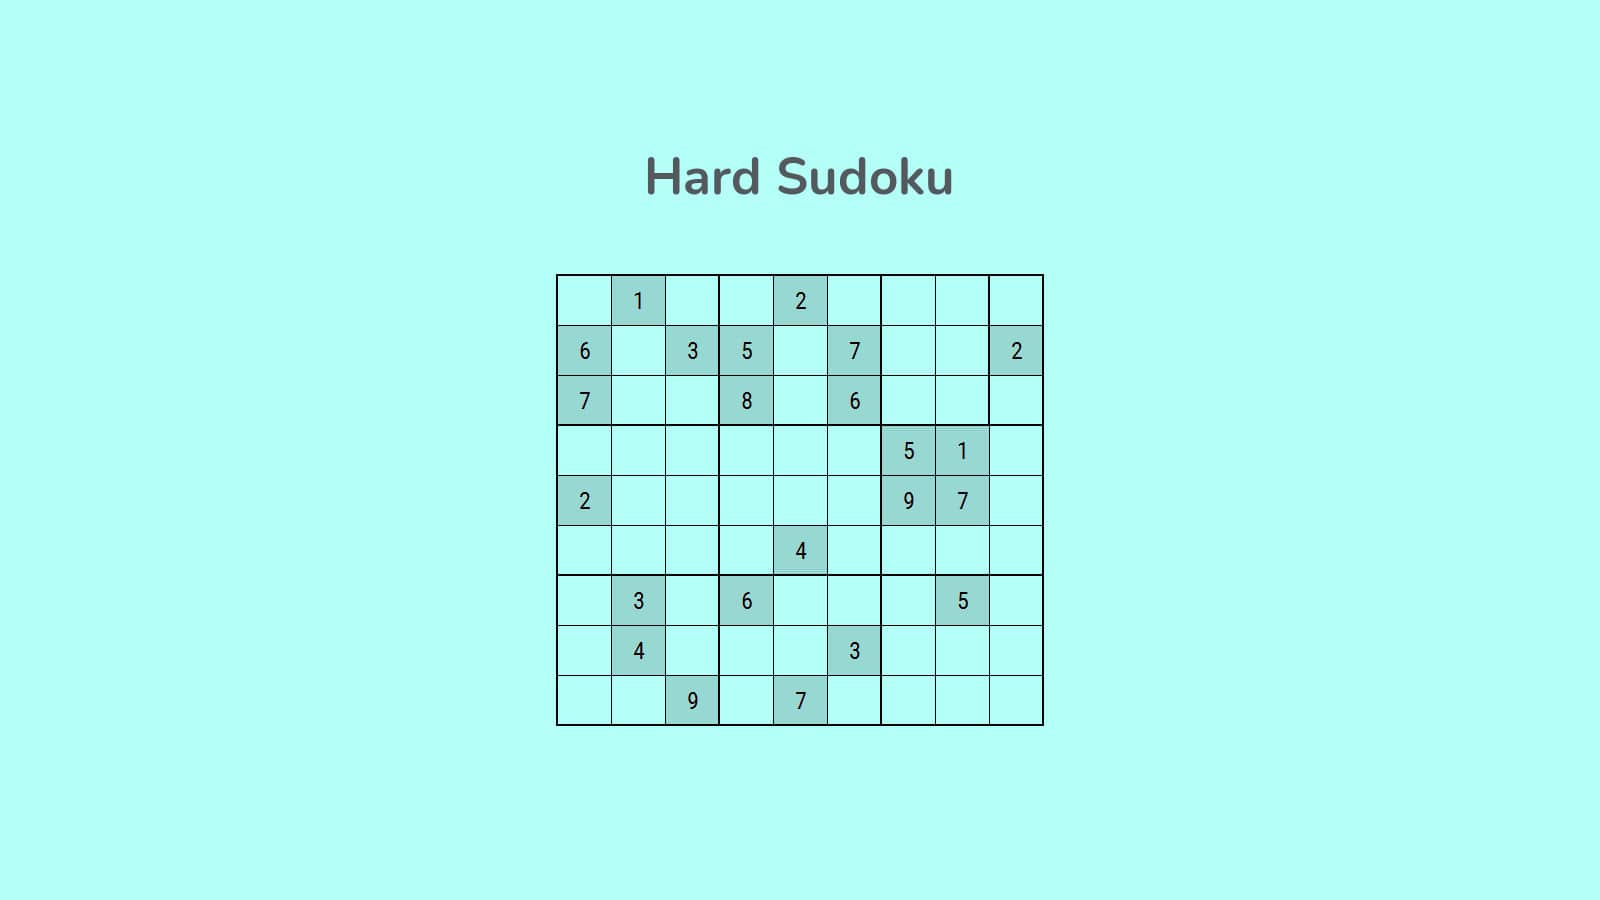 nytimes hard sudoku 16th february 2021 solution